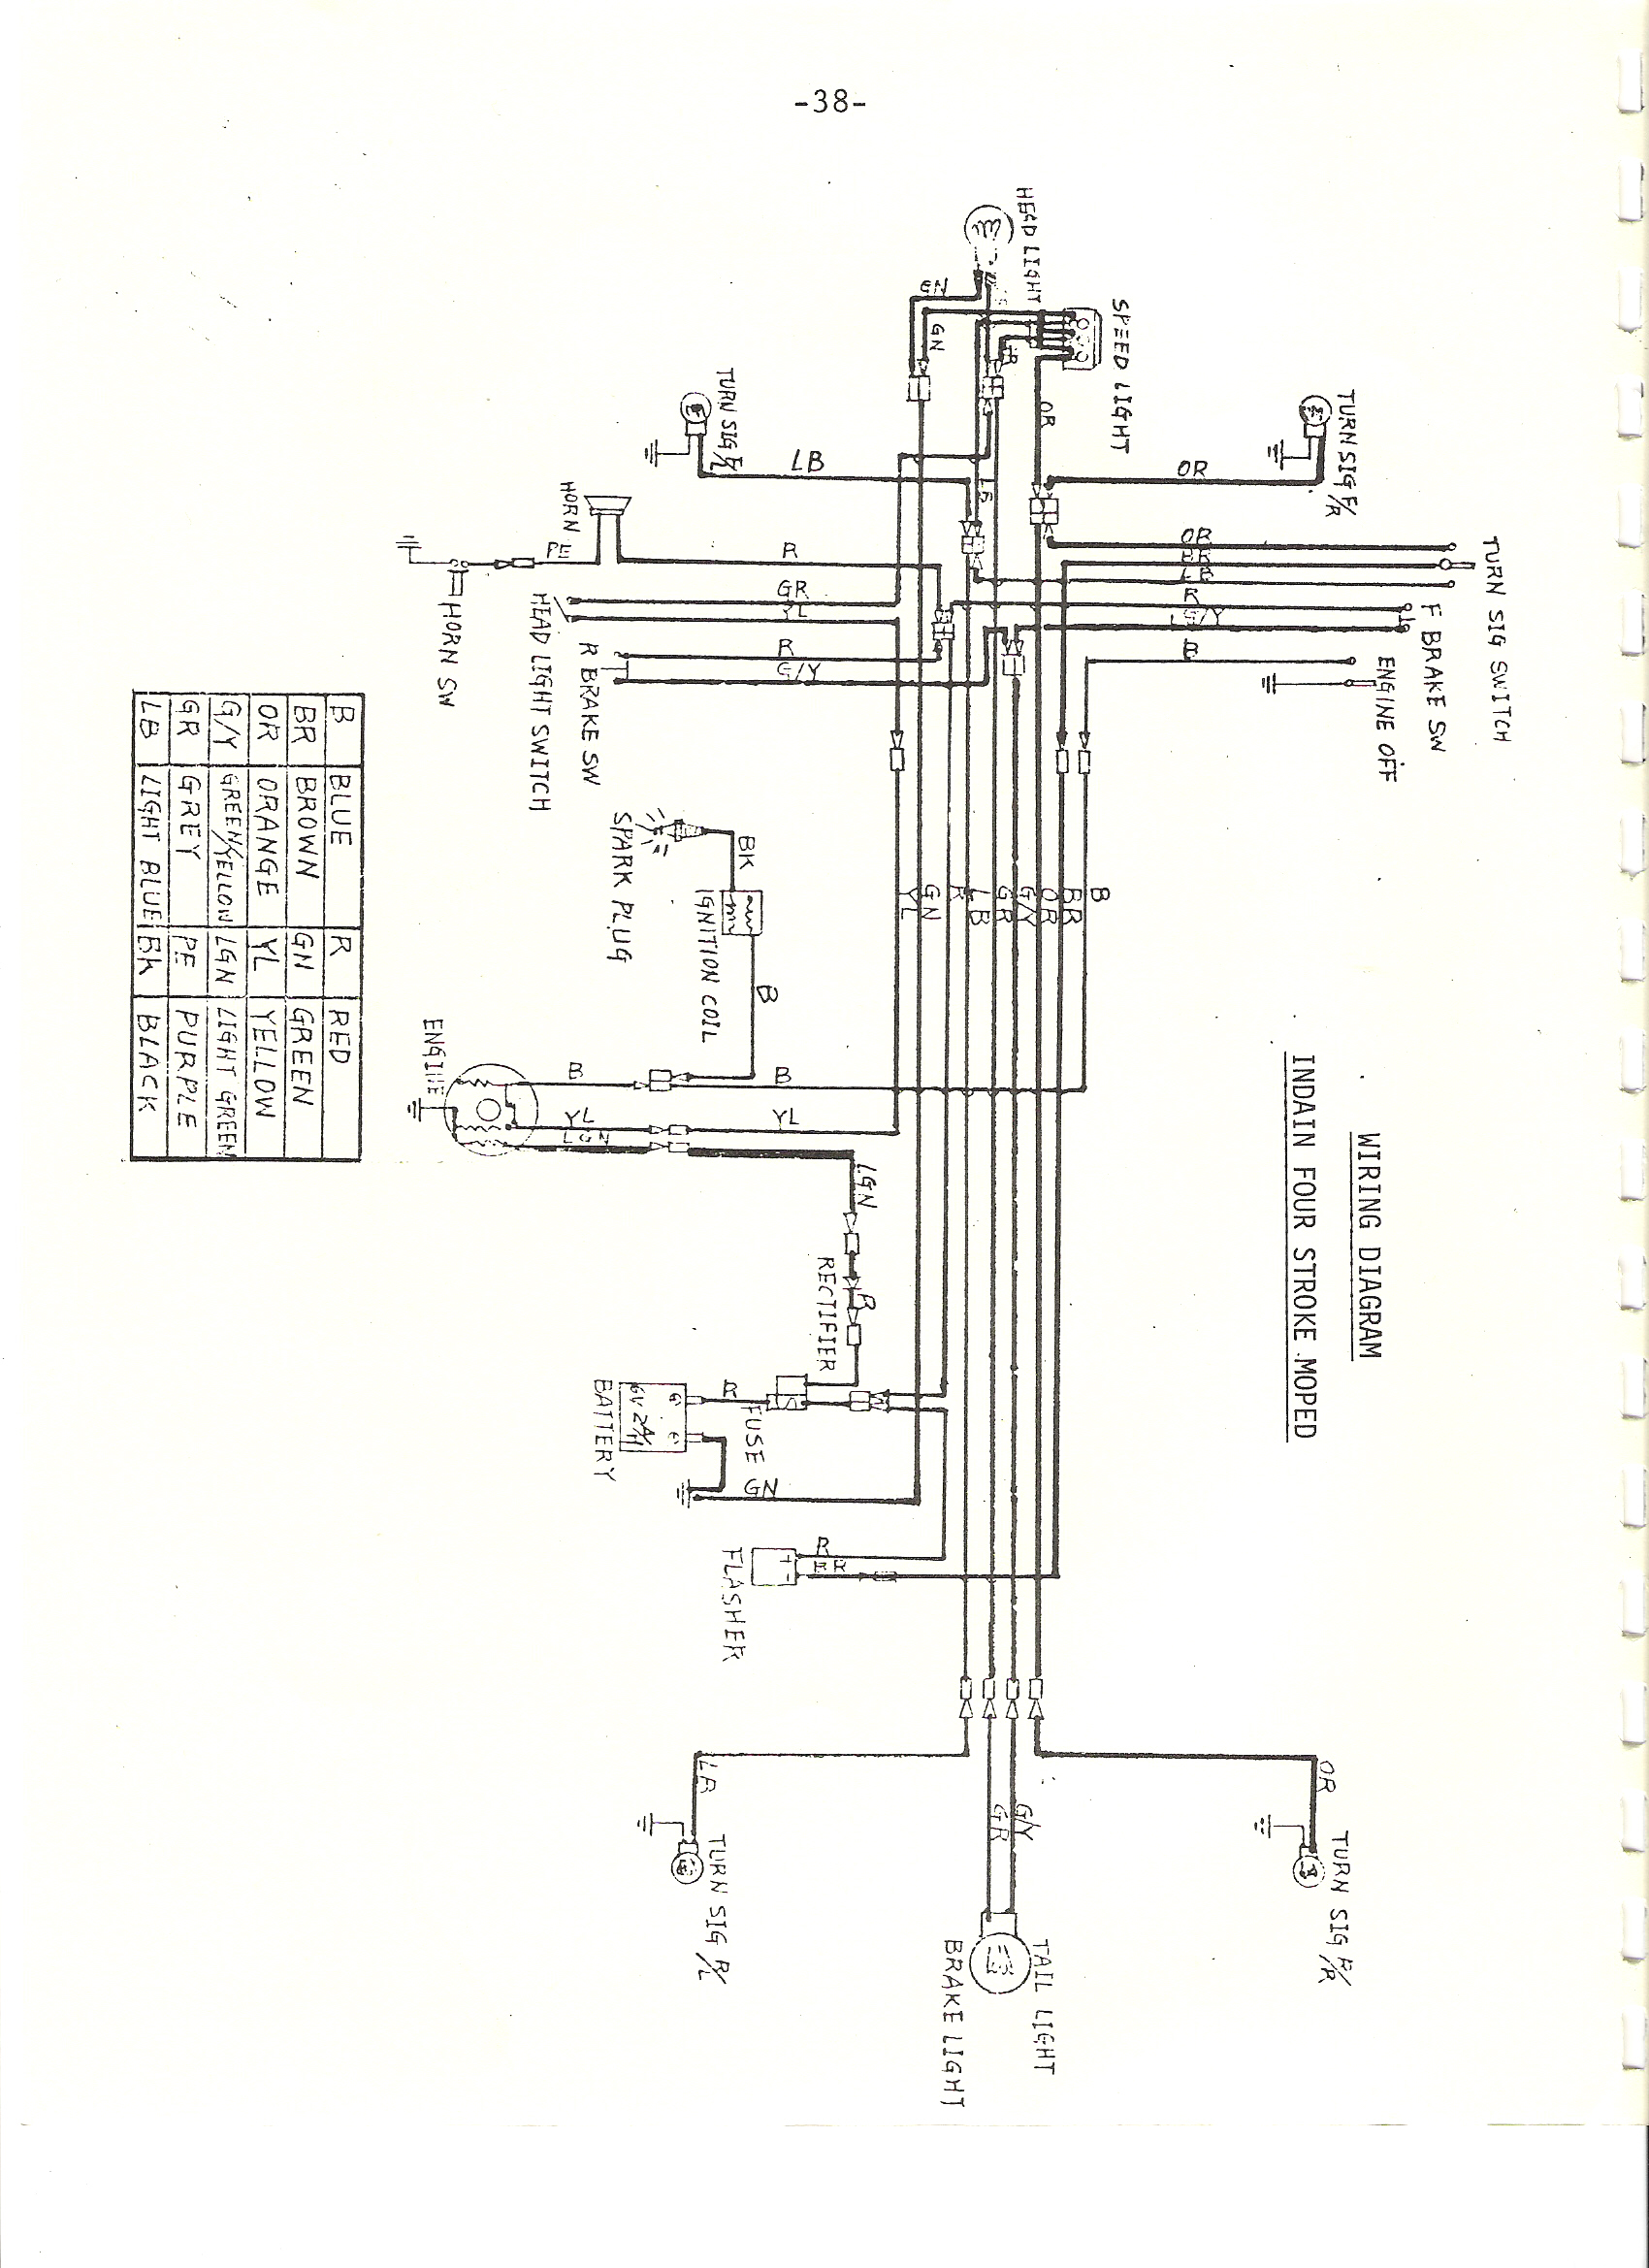 Re: 1980 Indian Chief wiring diagram?